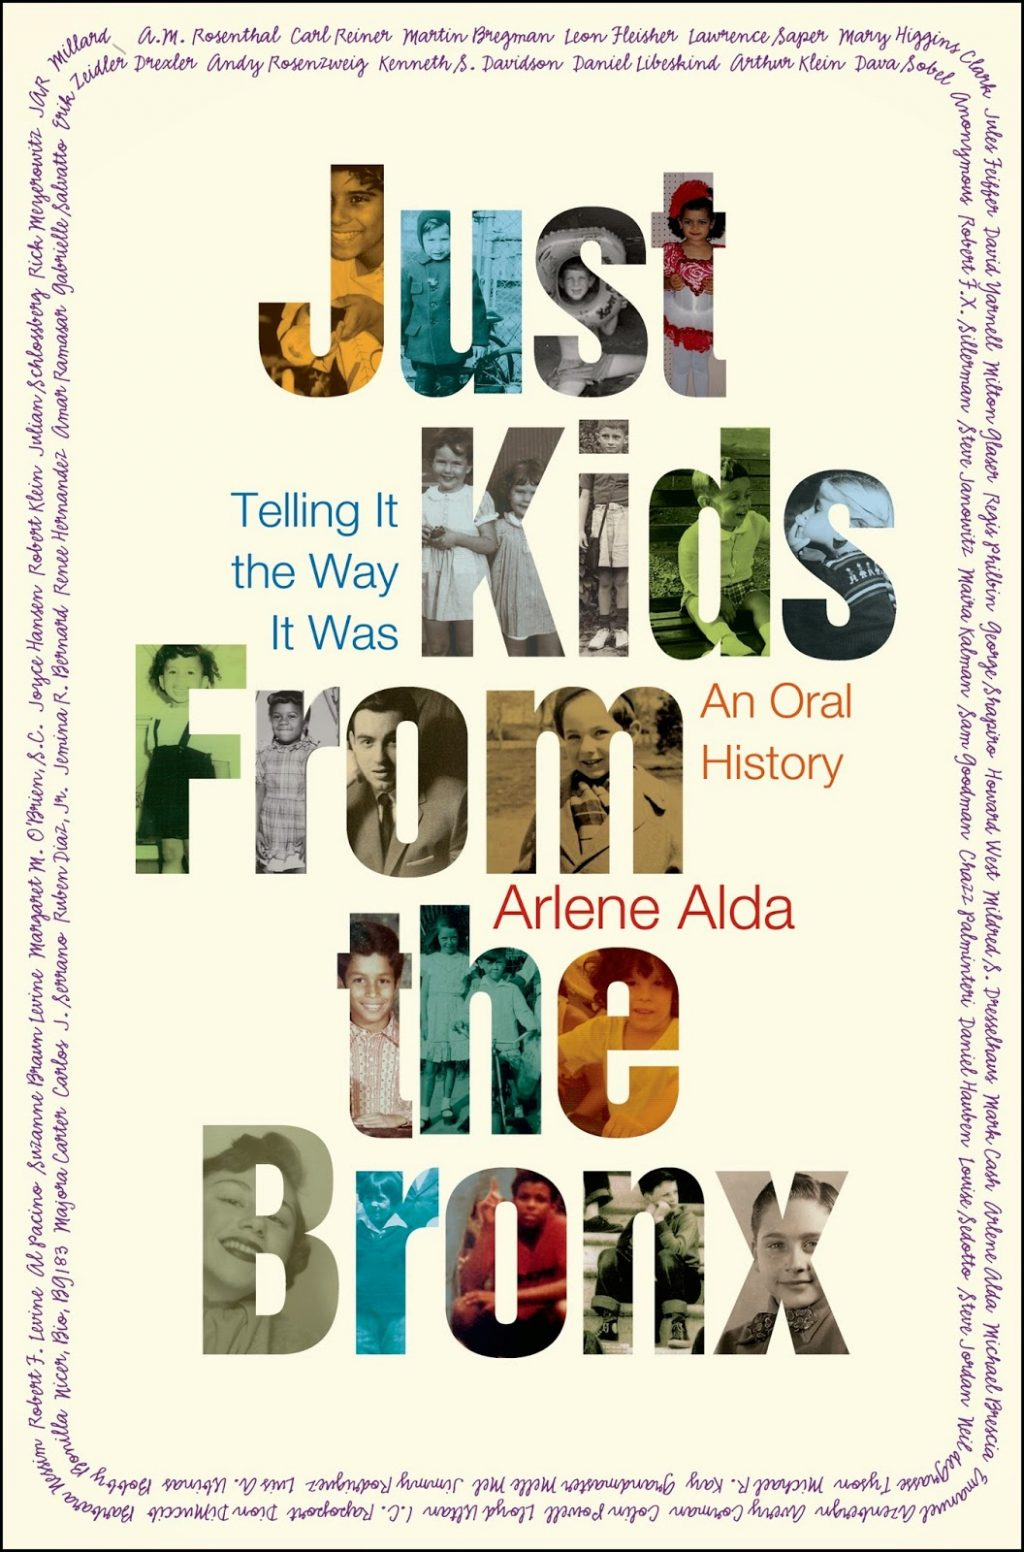 Just Kids from the Bronx by Arlene Alda